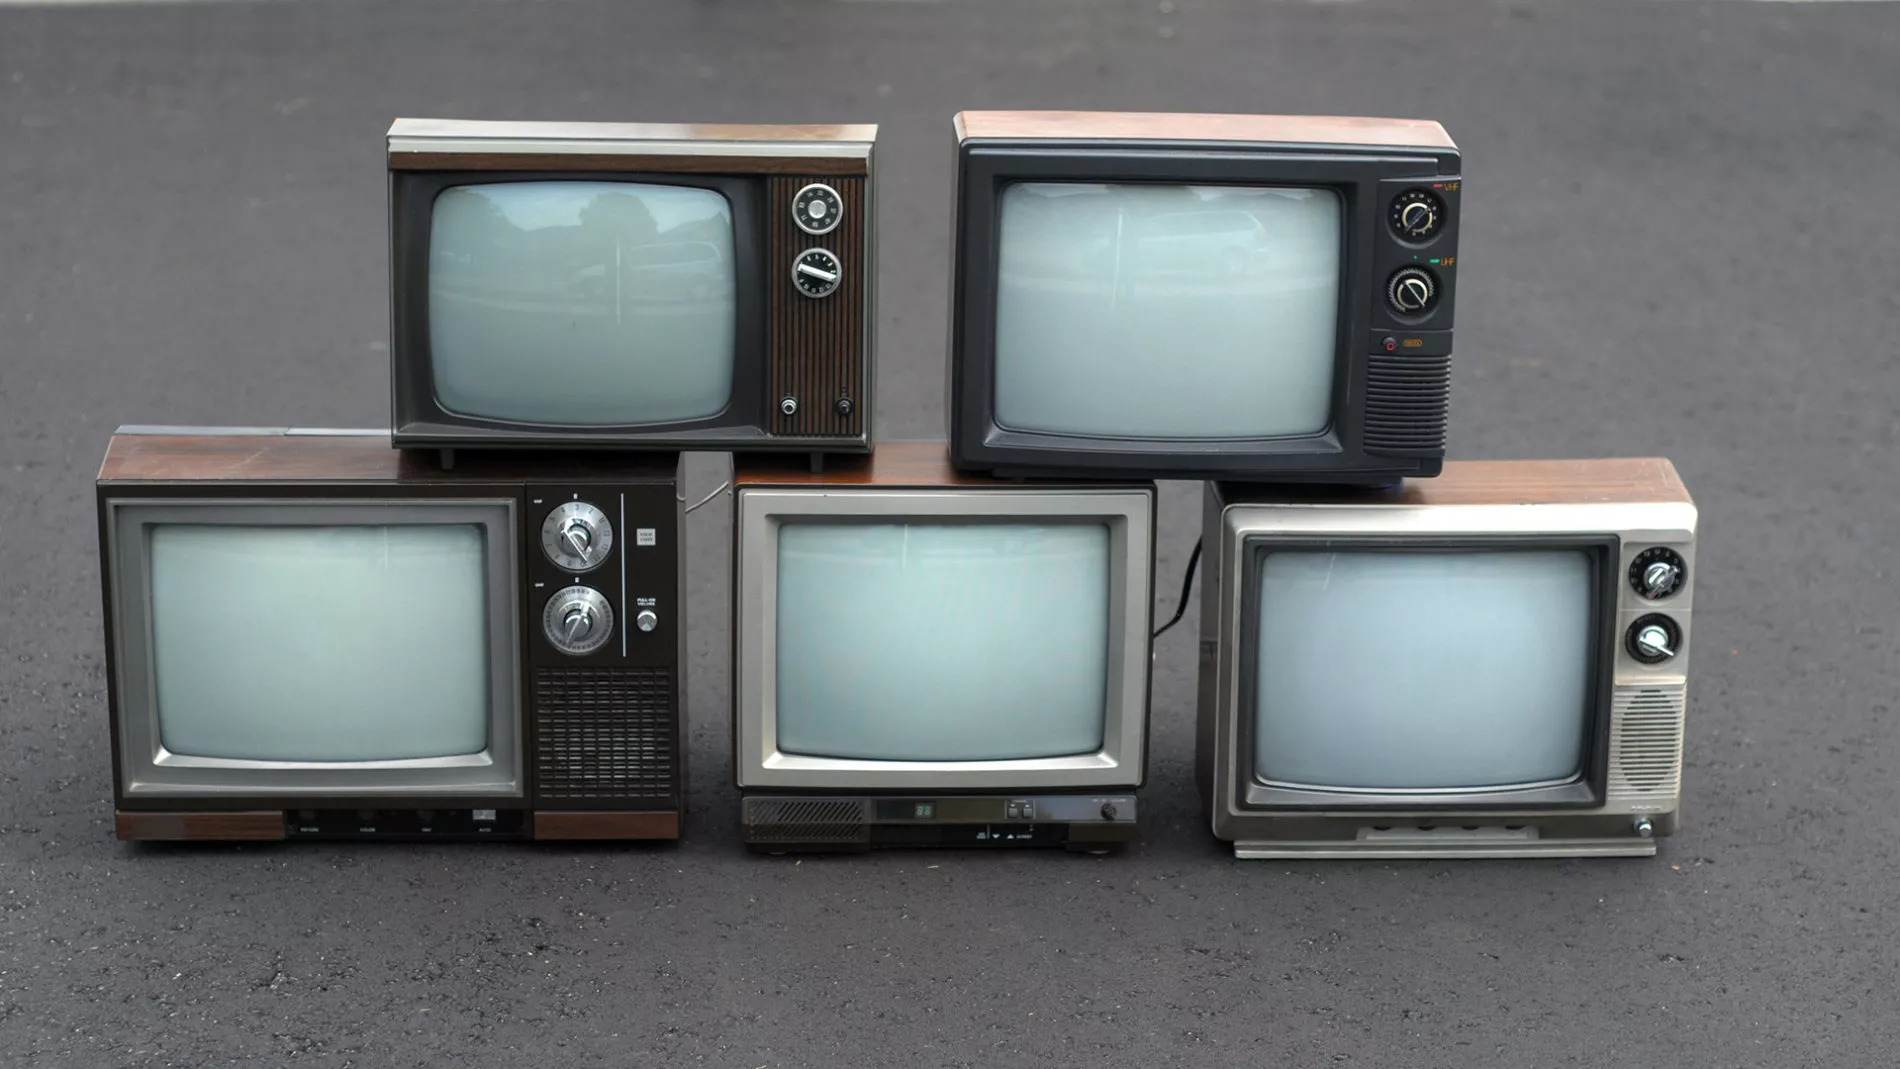 old tvs video ss 1920